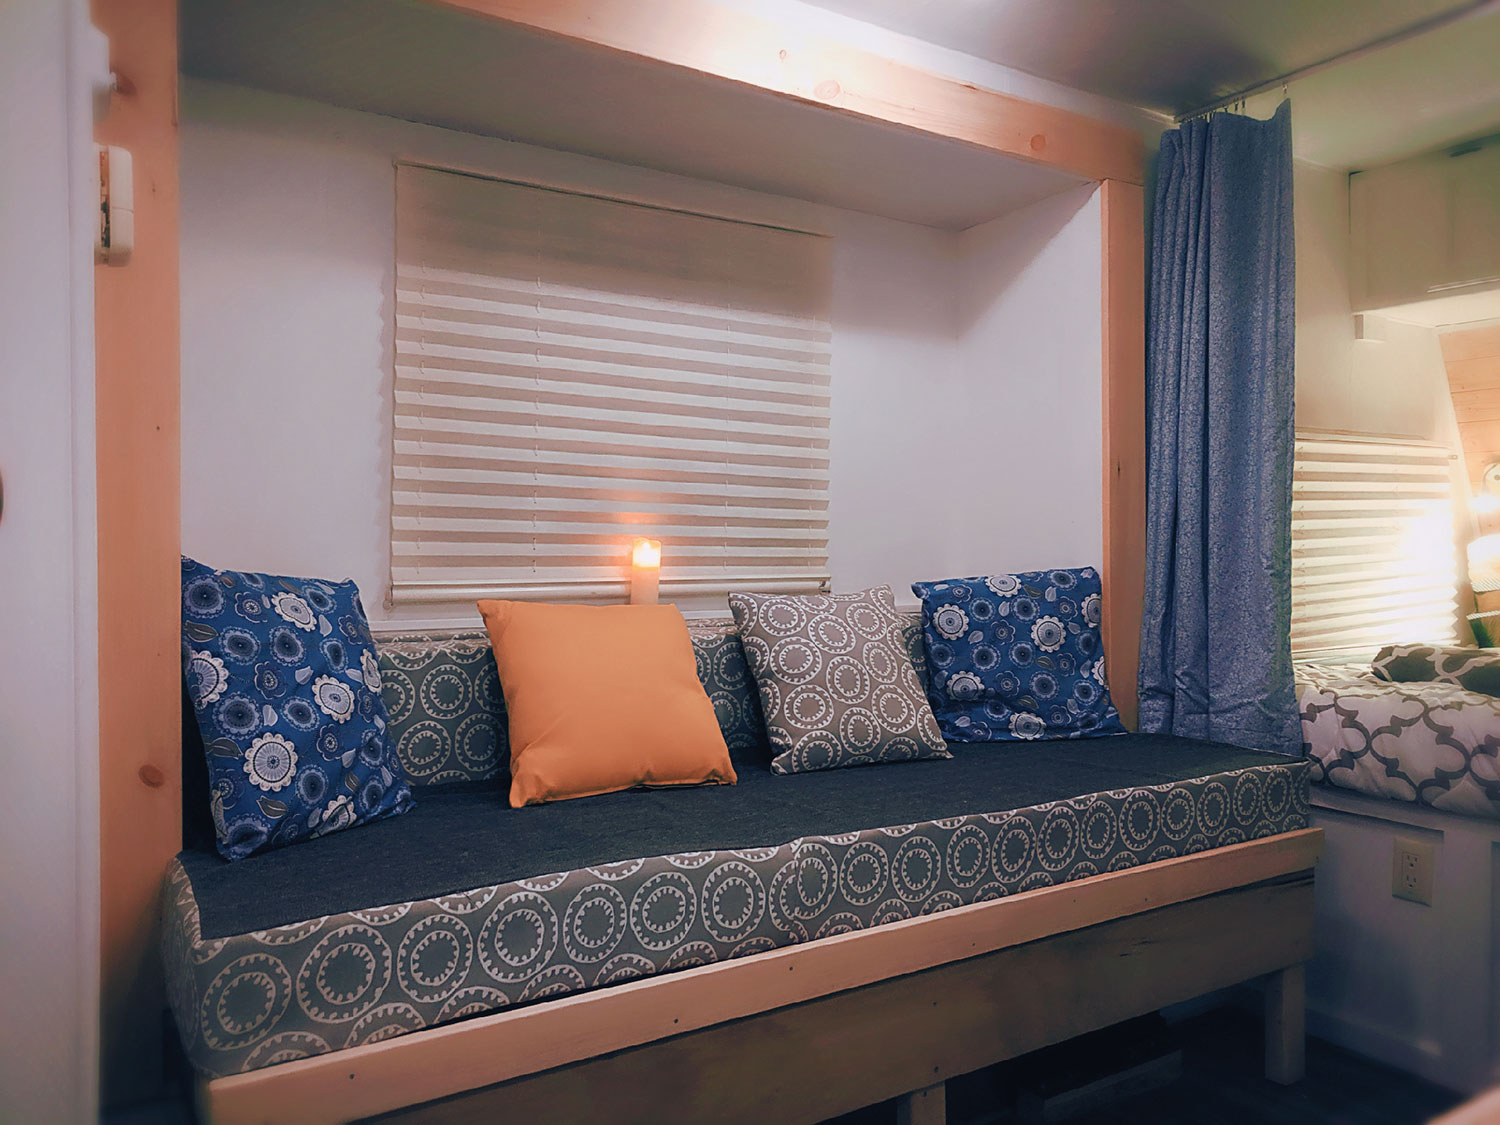 The dining area bench converts into bed.